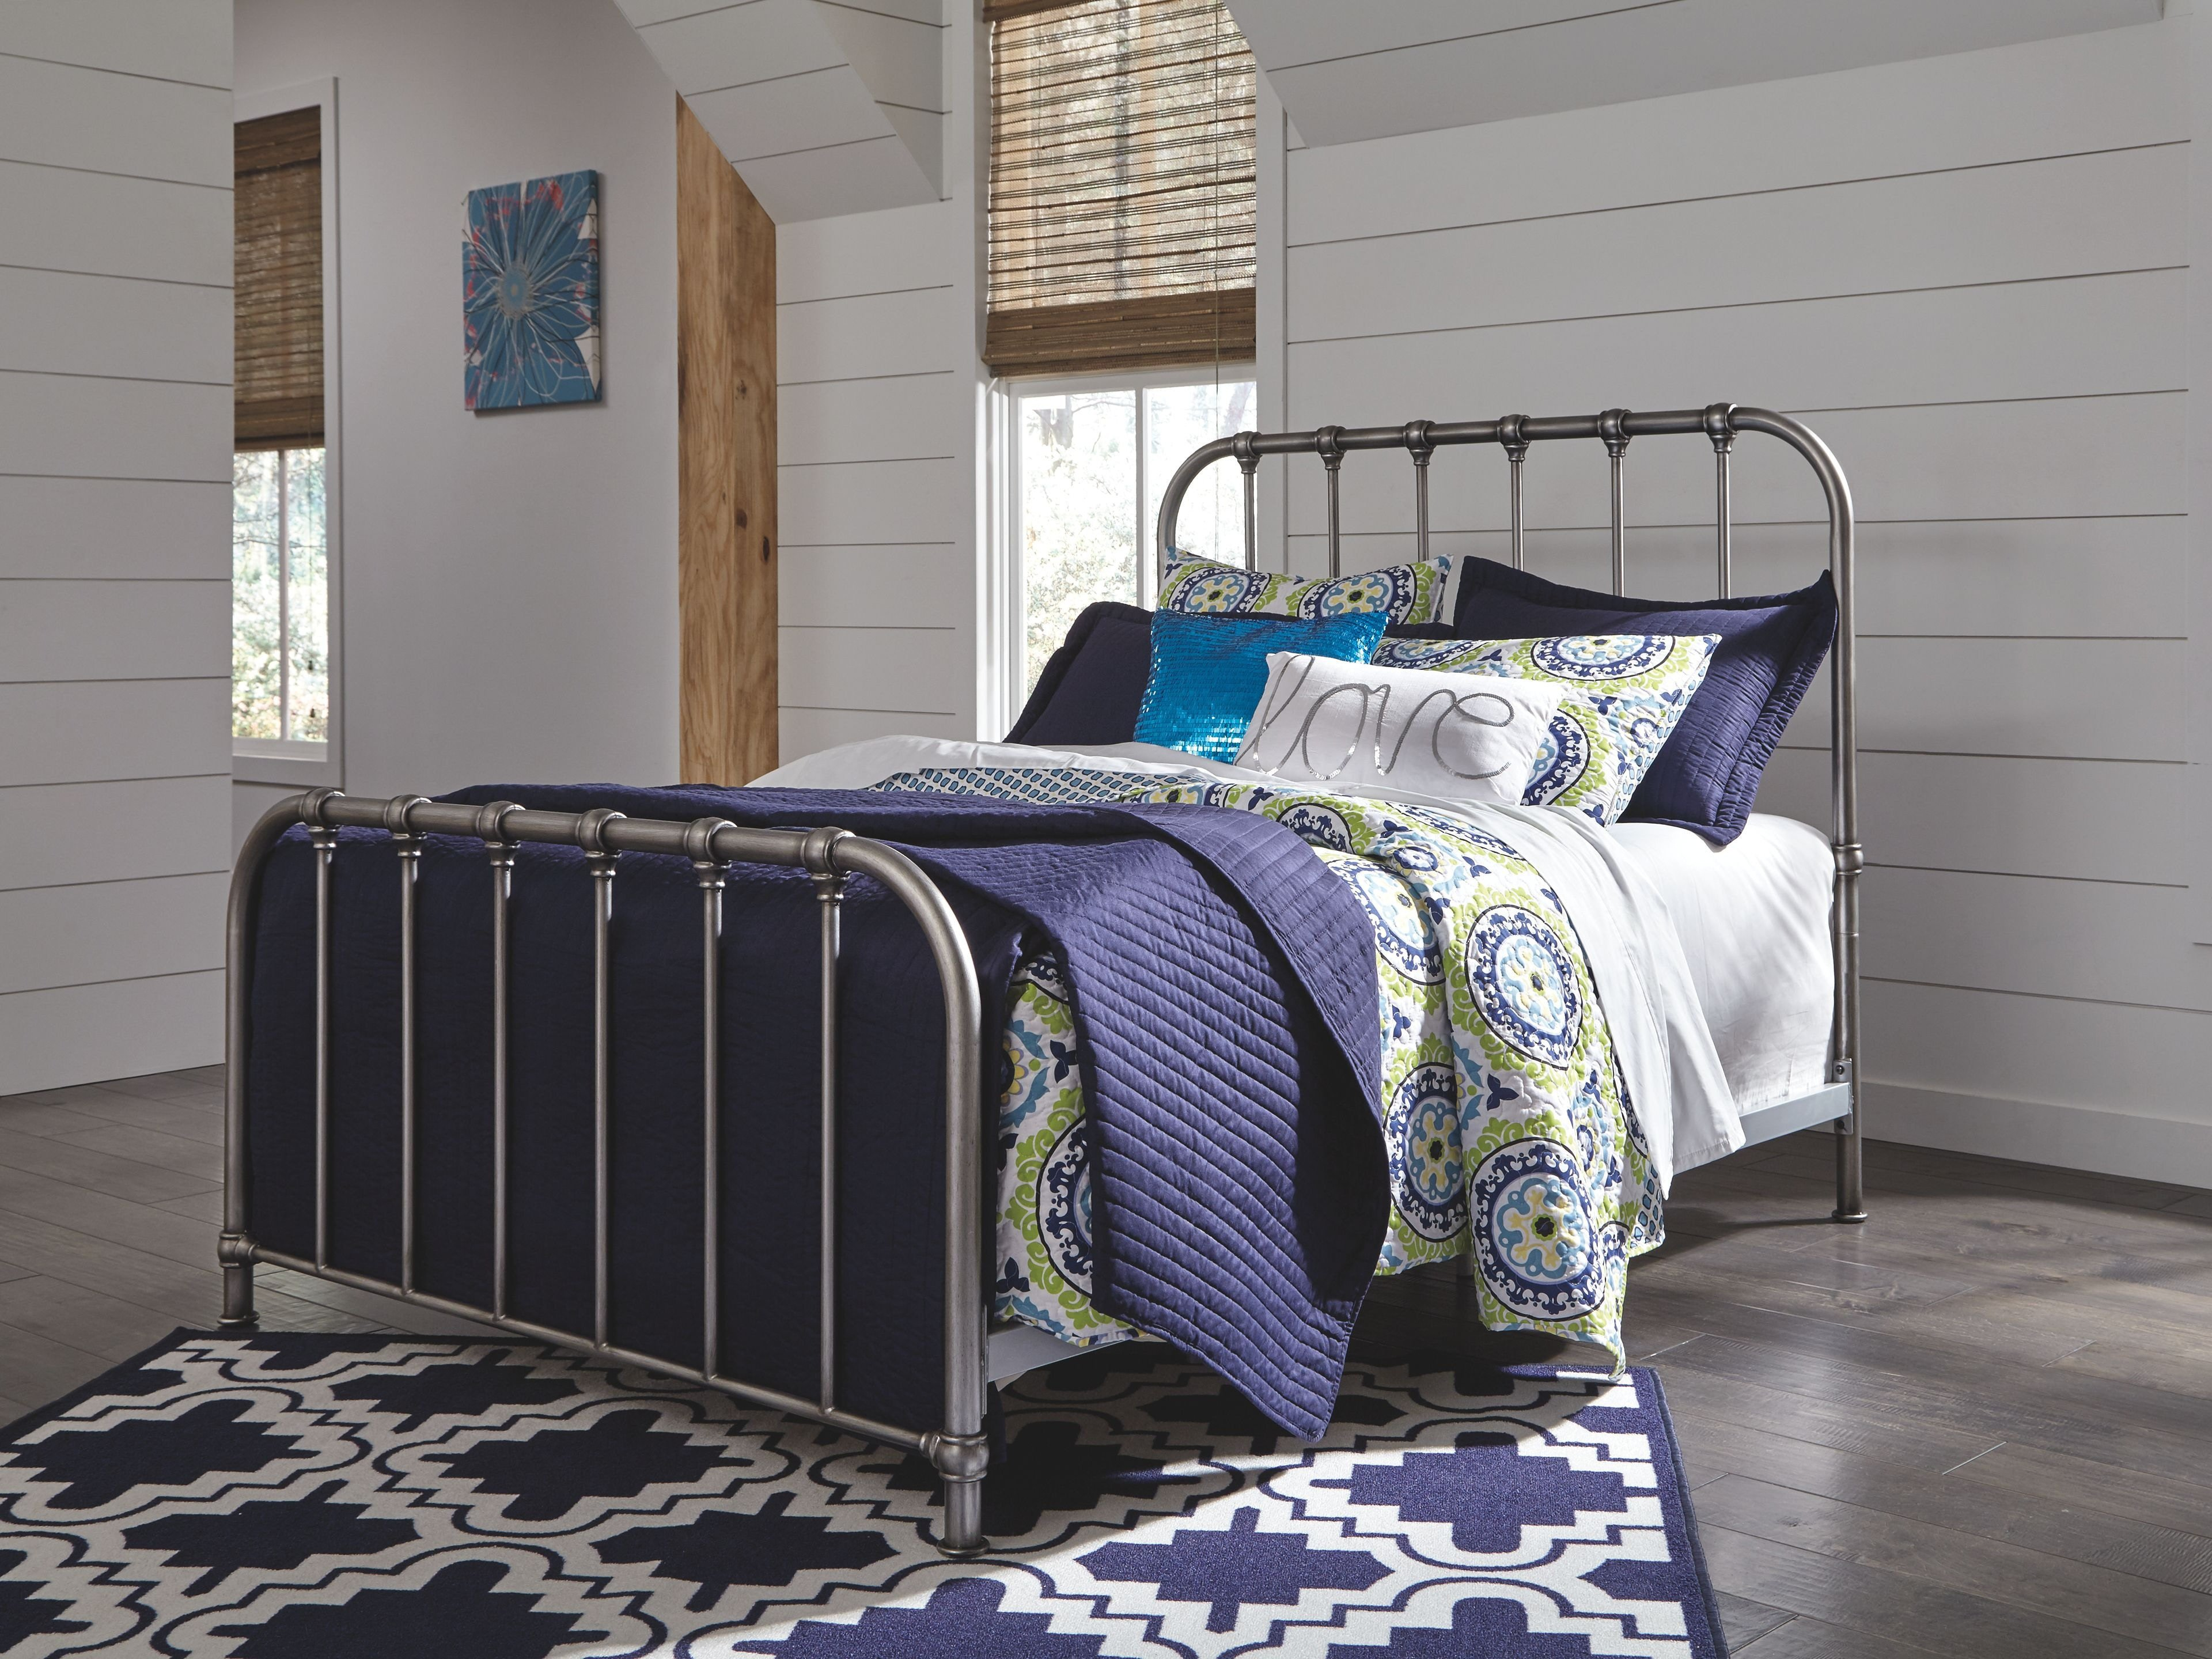 Ashley Queen Bedroom Set Best Of Signature Design by ashley Bedroom Nashburg Queen Metal Bed